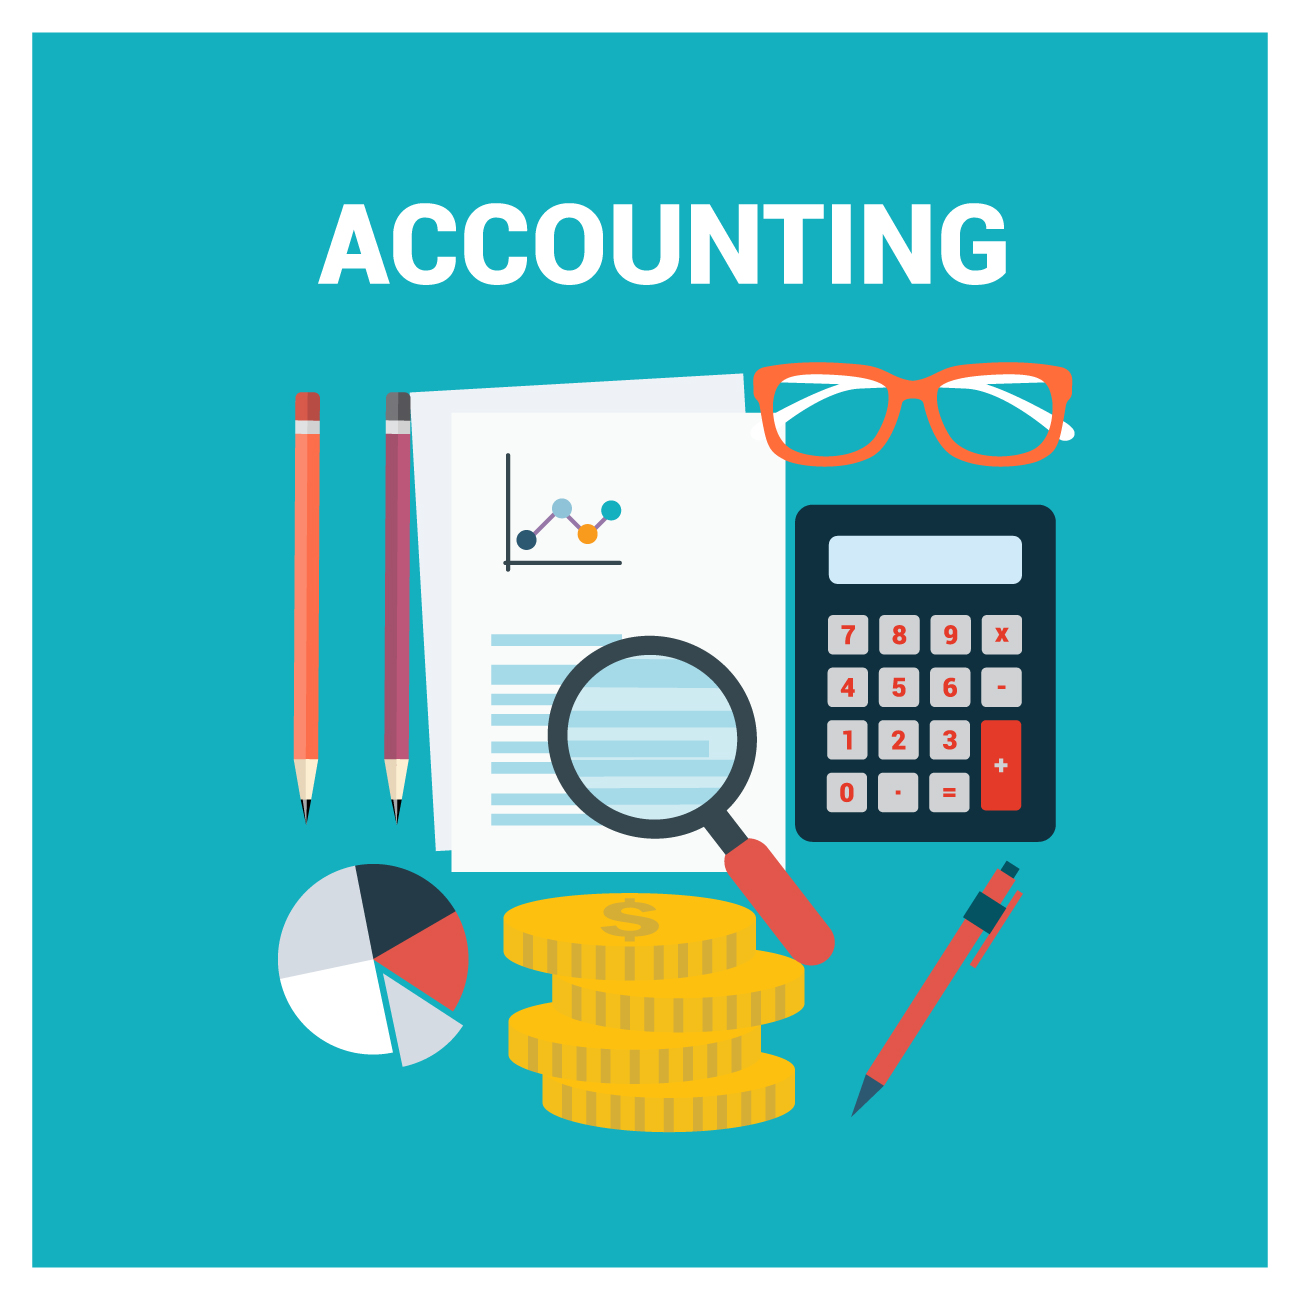 Accountant tools in graphic - greenish background